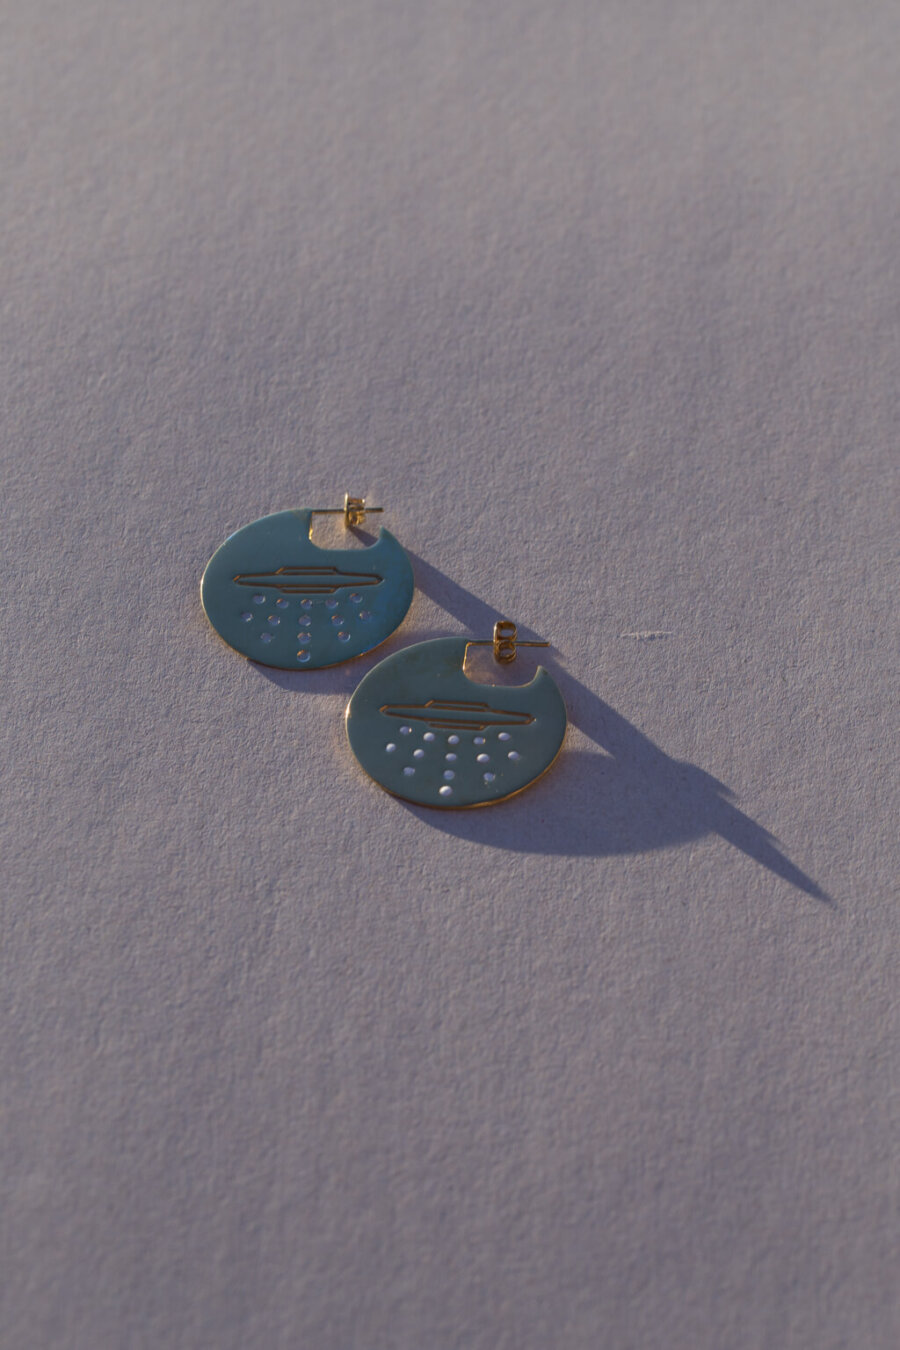 the-ufo-disk-earrings-by-glenda-lopez-alta